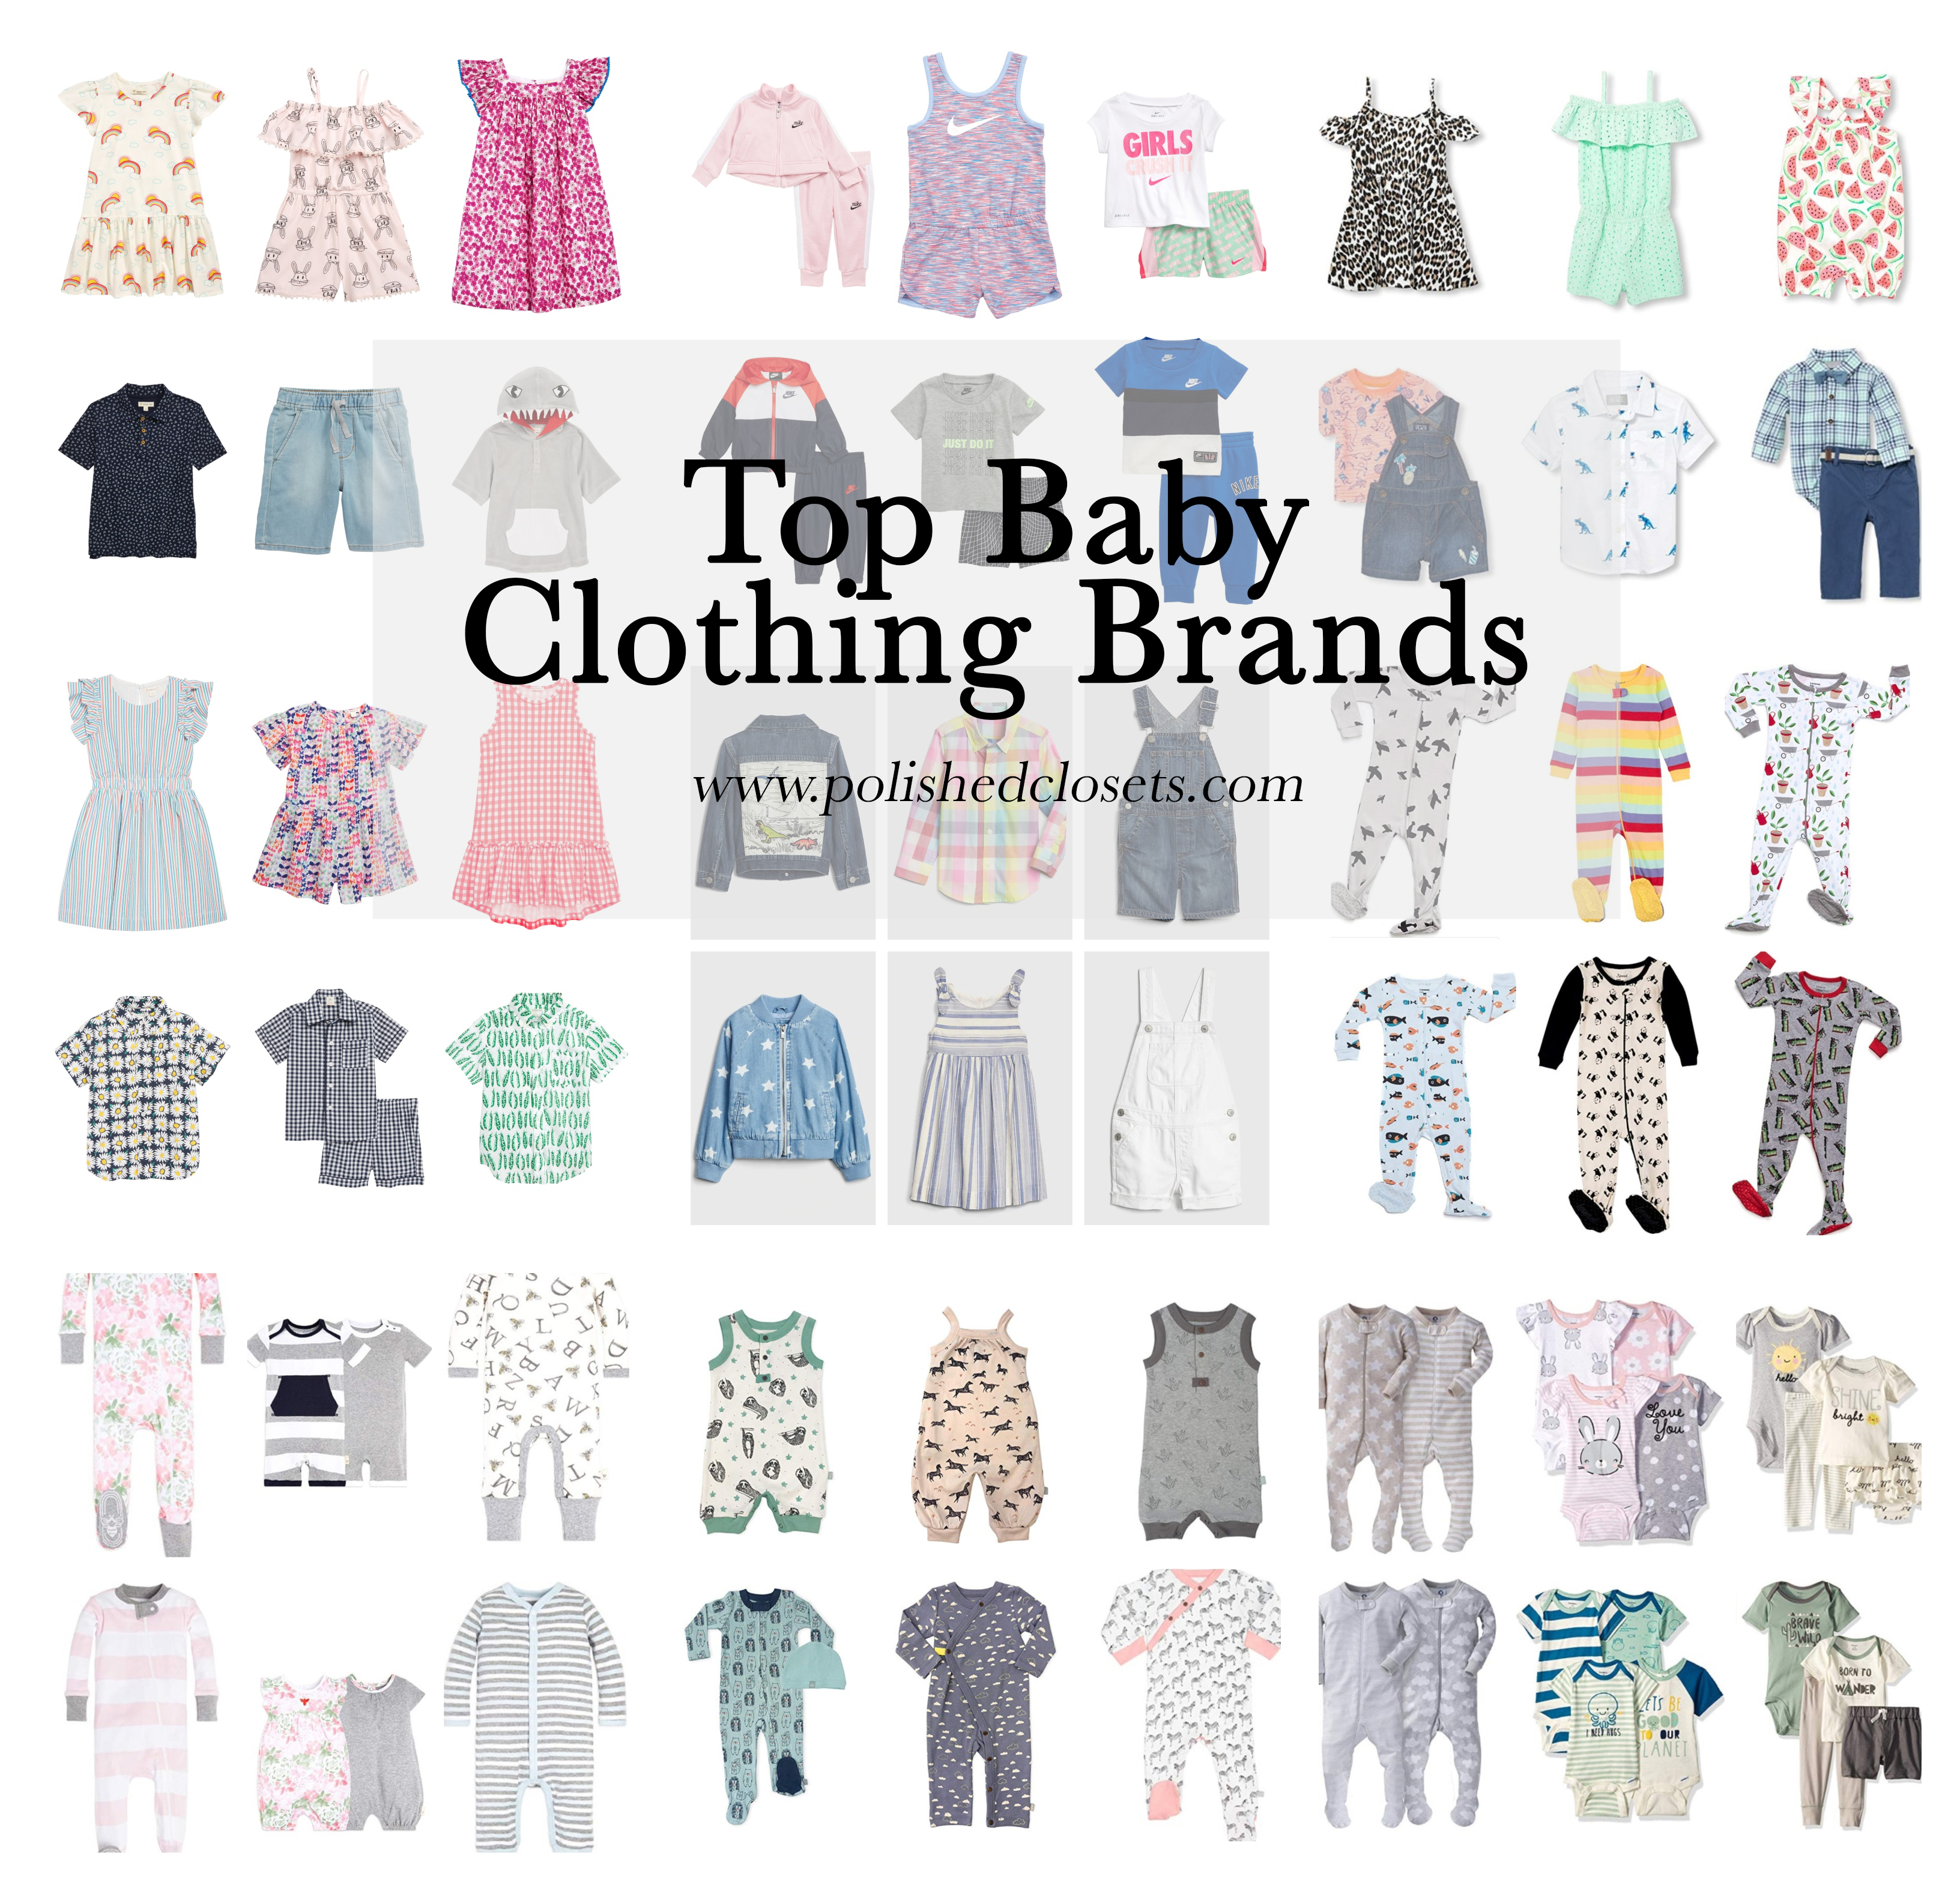 4 Top Baby Clothing Brands - Polished Closets Blog